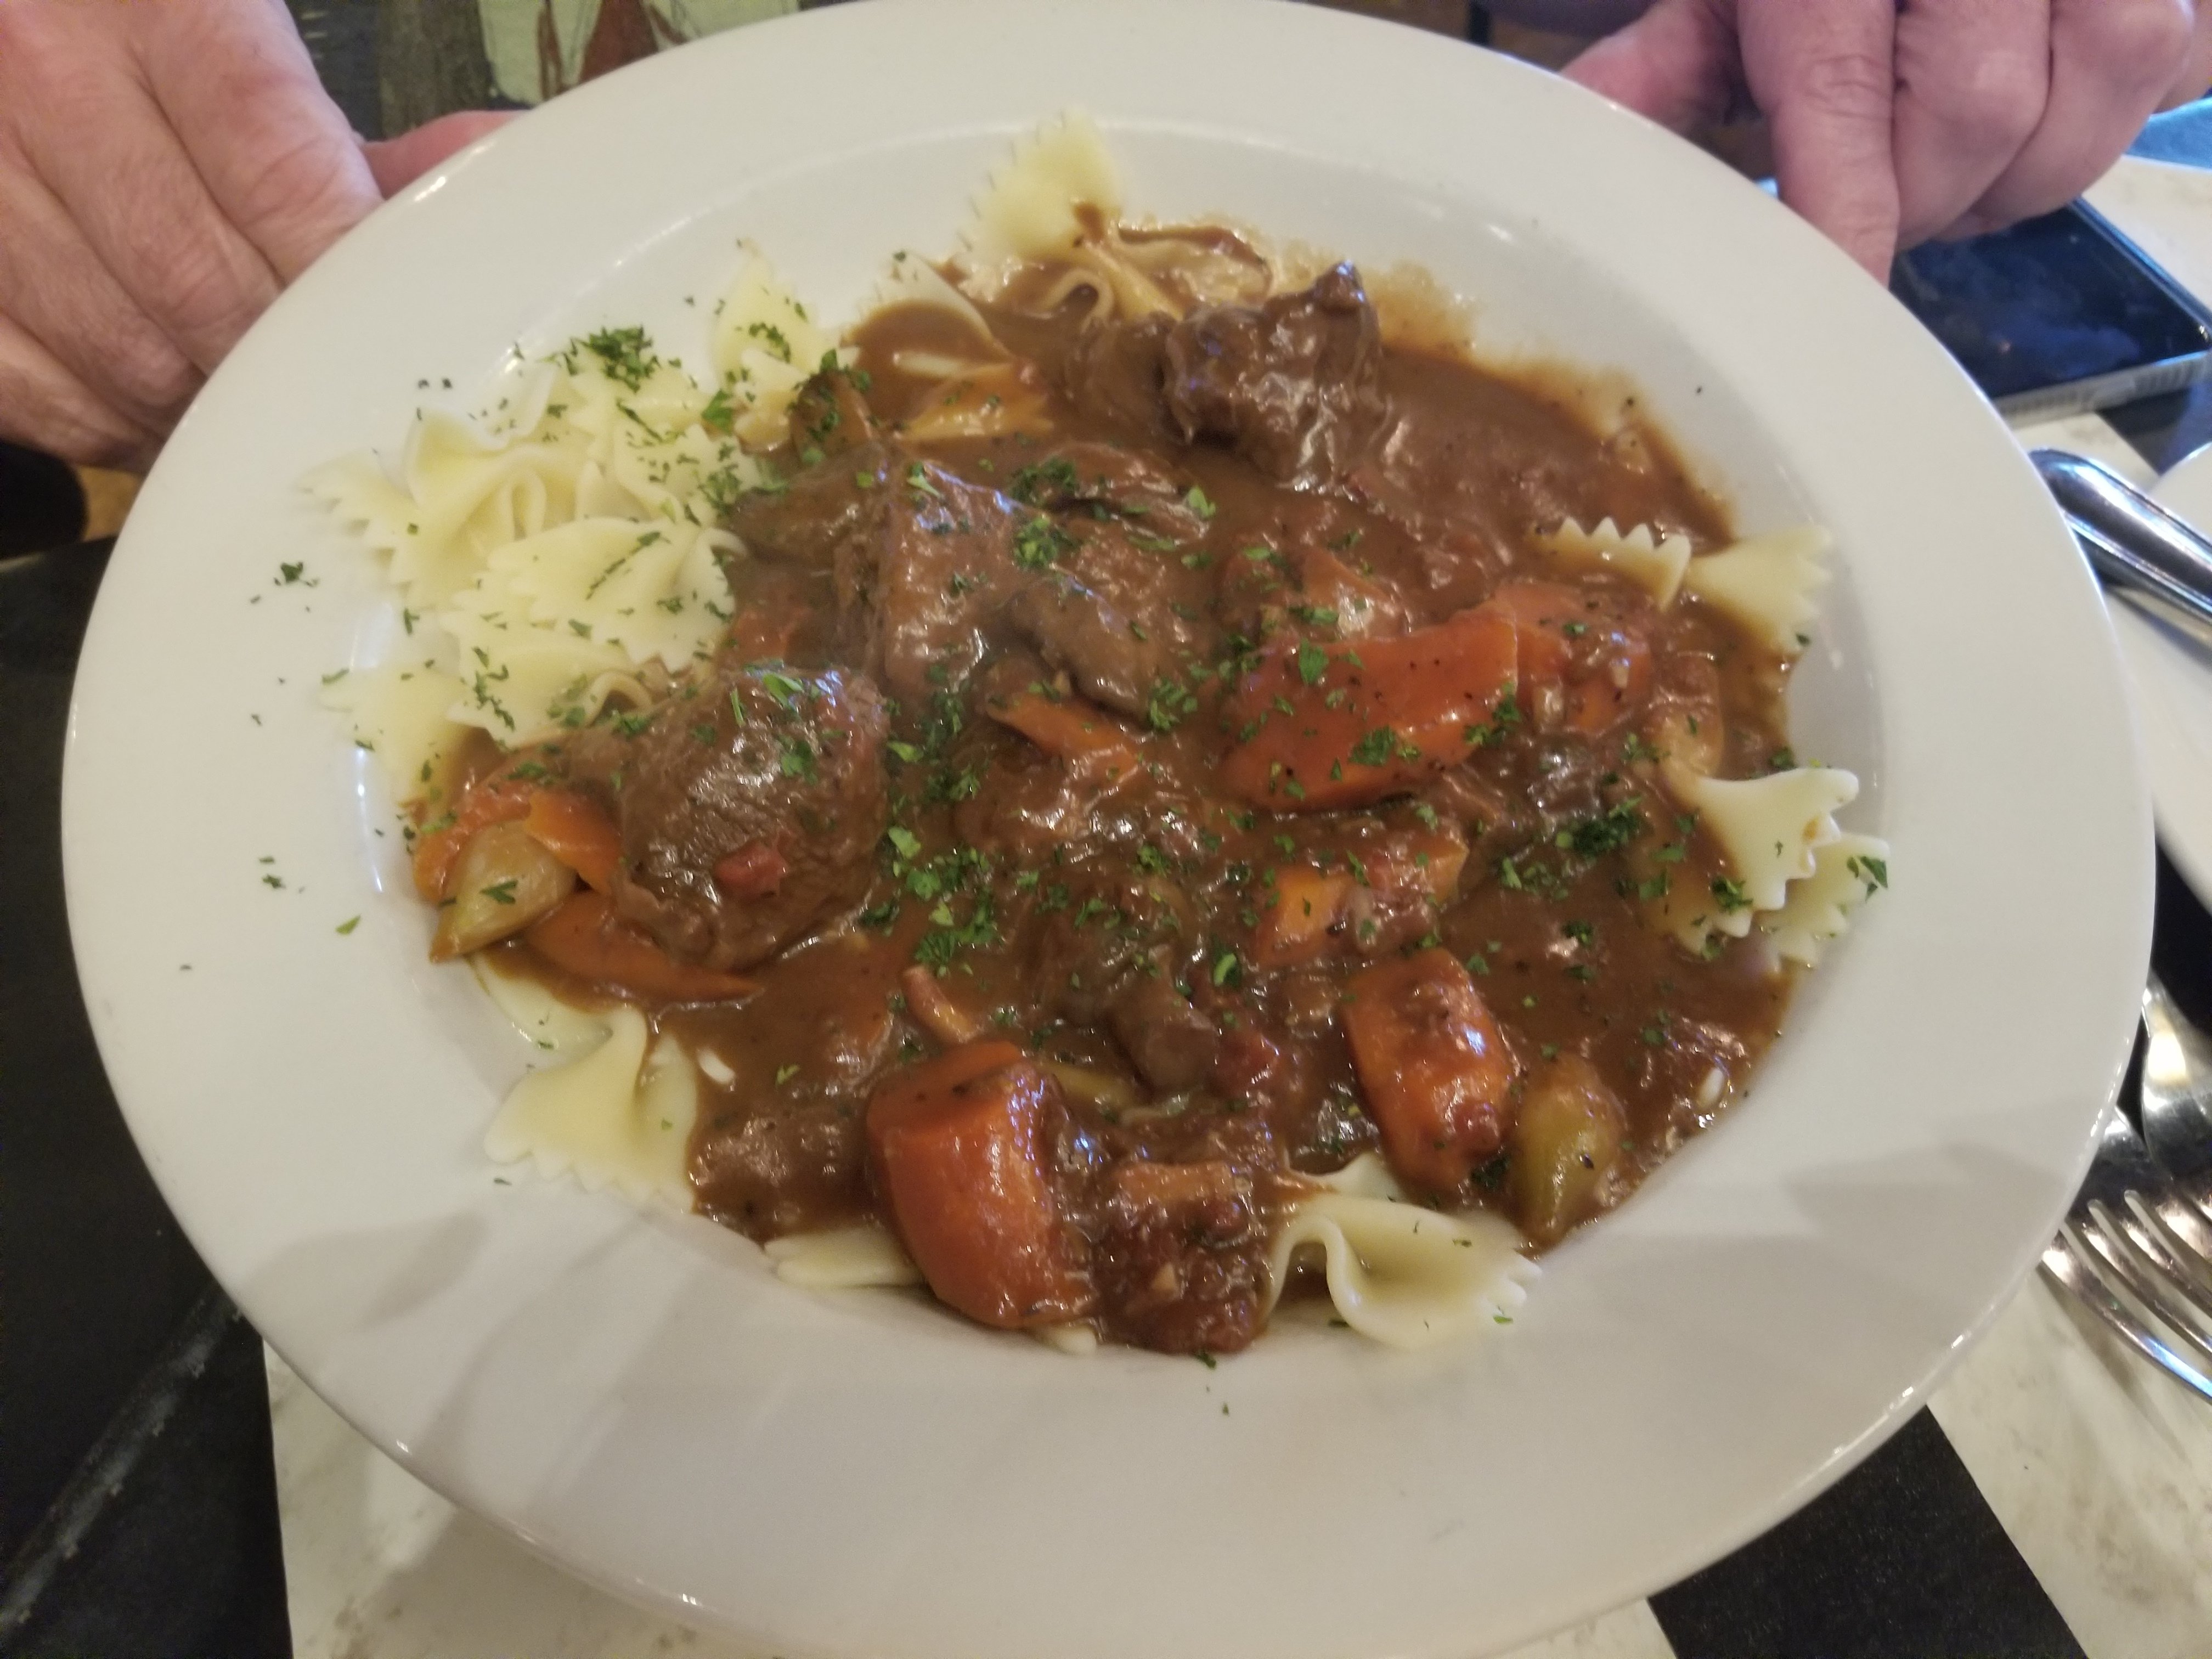 Le Beouf Bourguignon (Beef Burgundy)